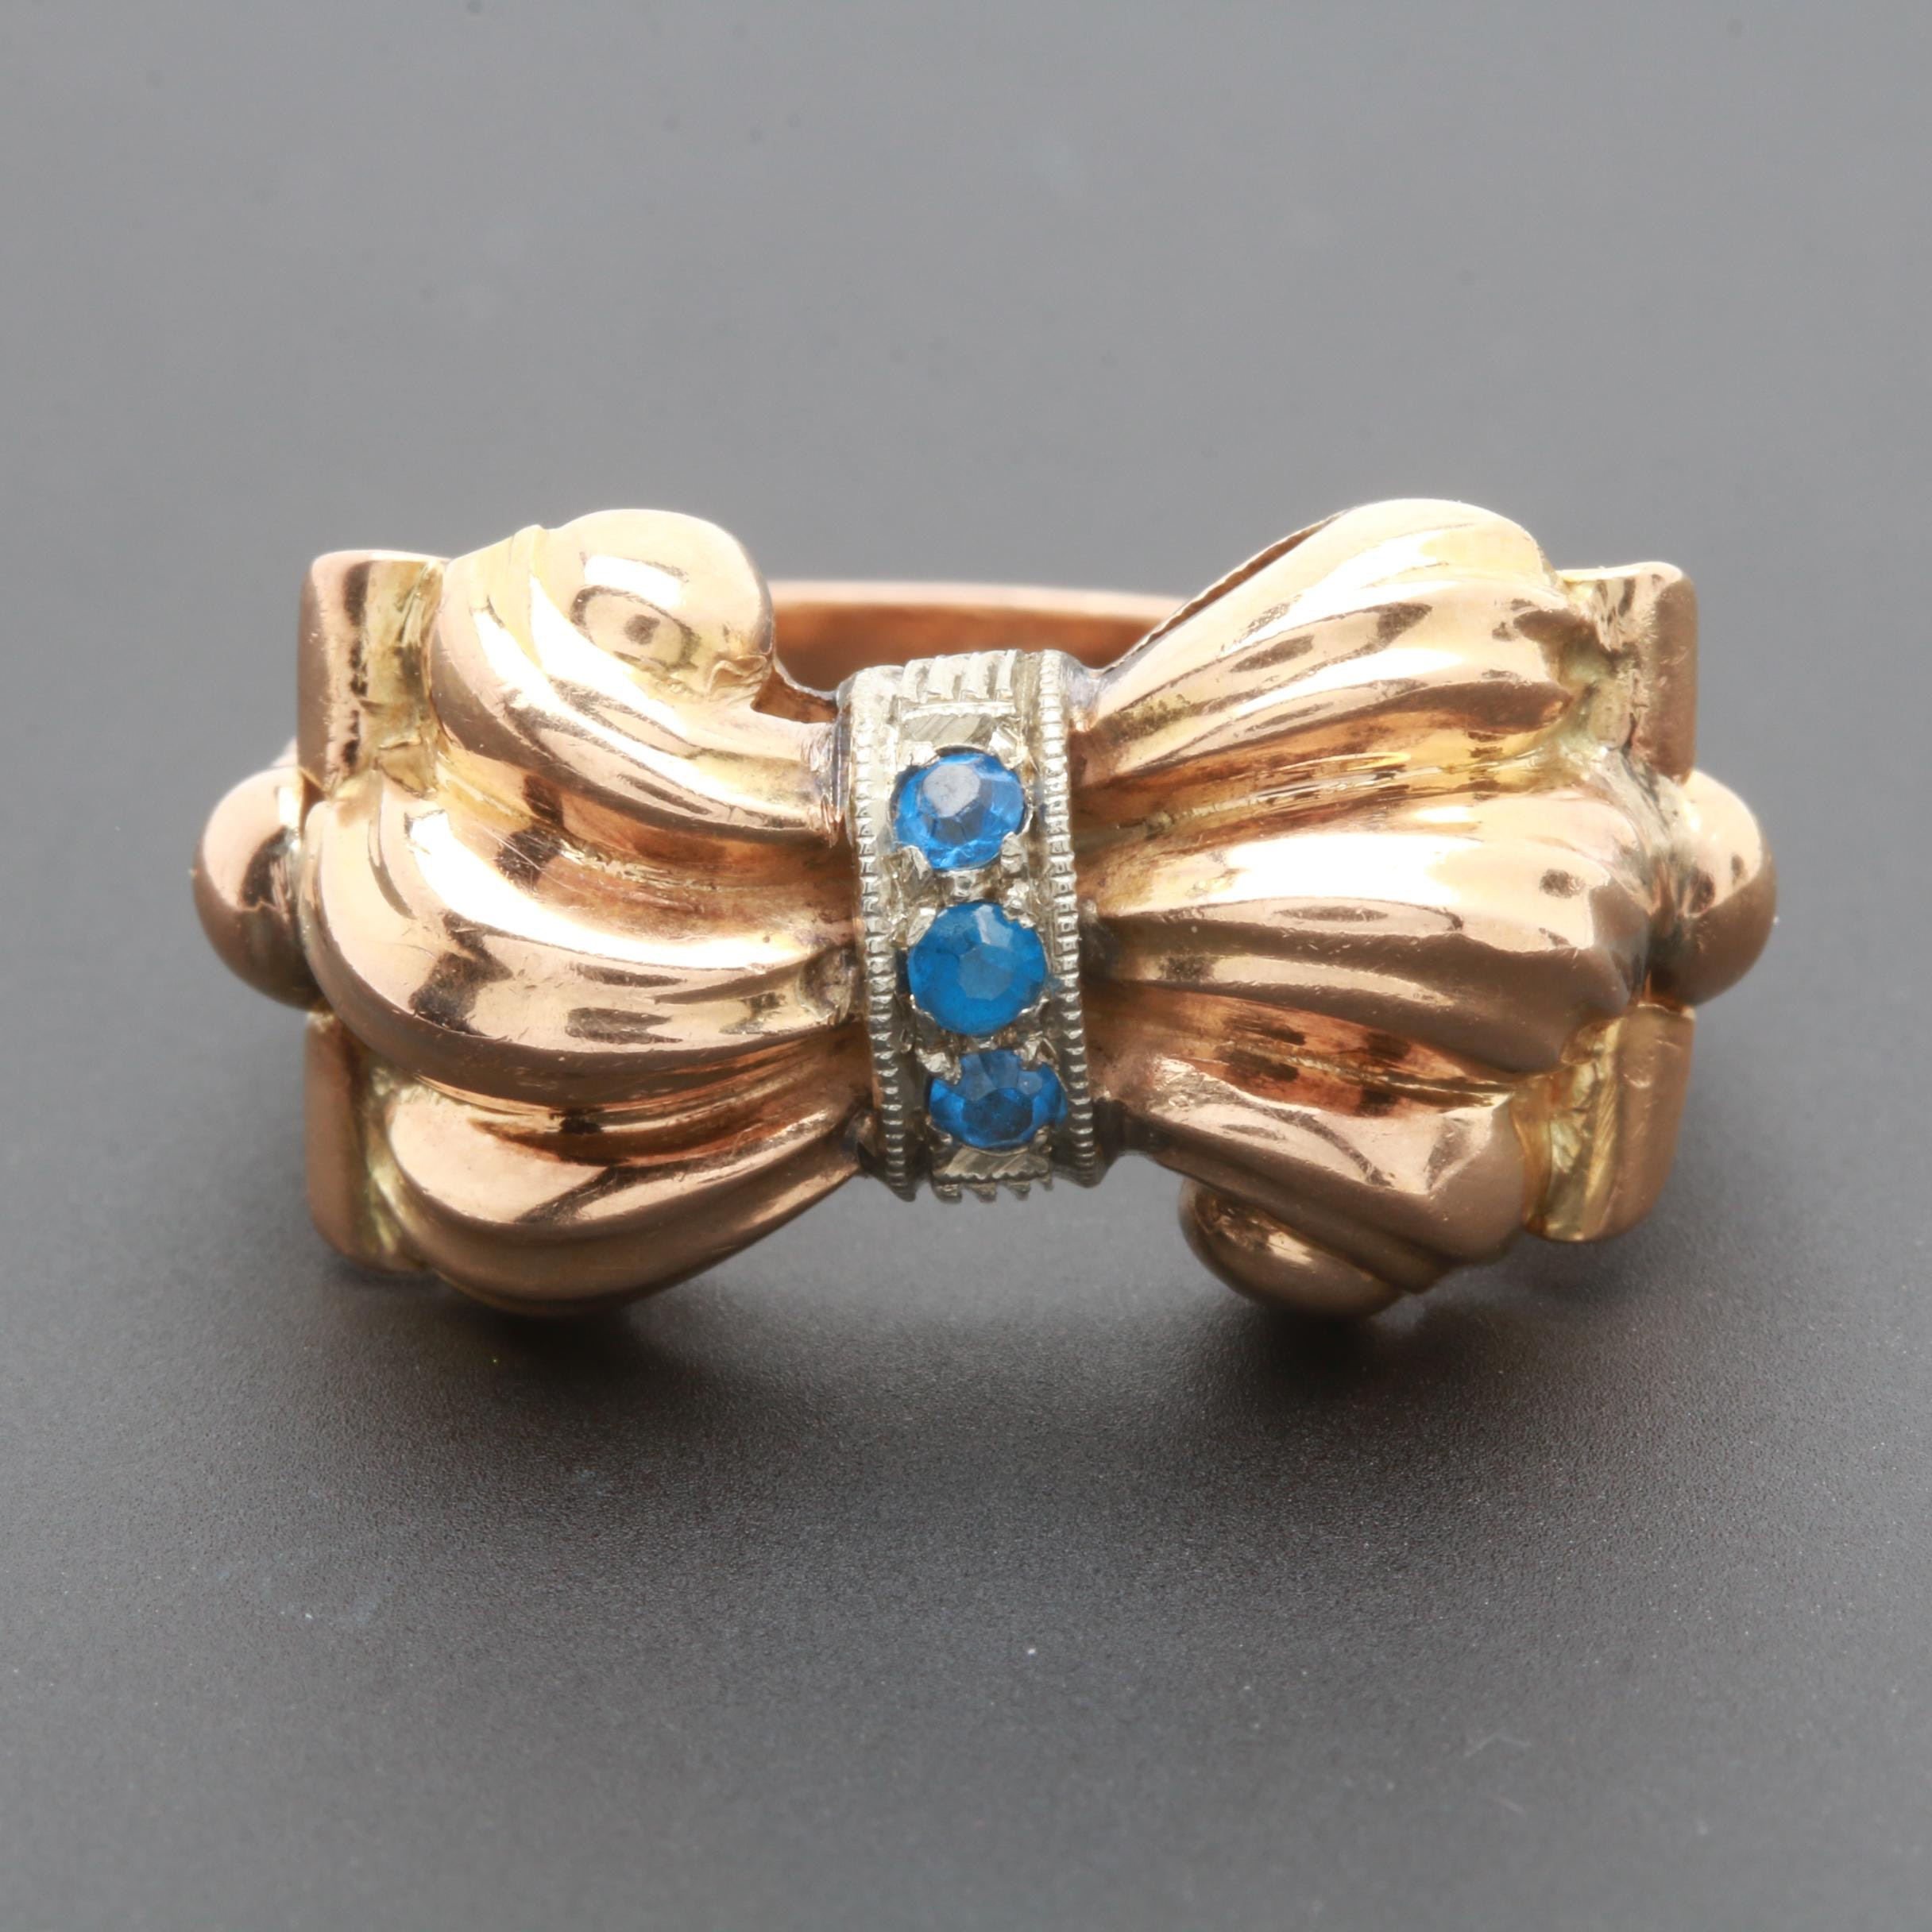 Retro Circa 1940s 18K Yellow and White Gold Synthetic Blue Spinel Bow Ring